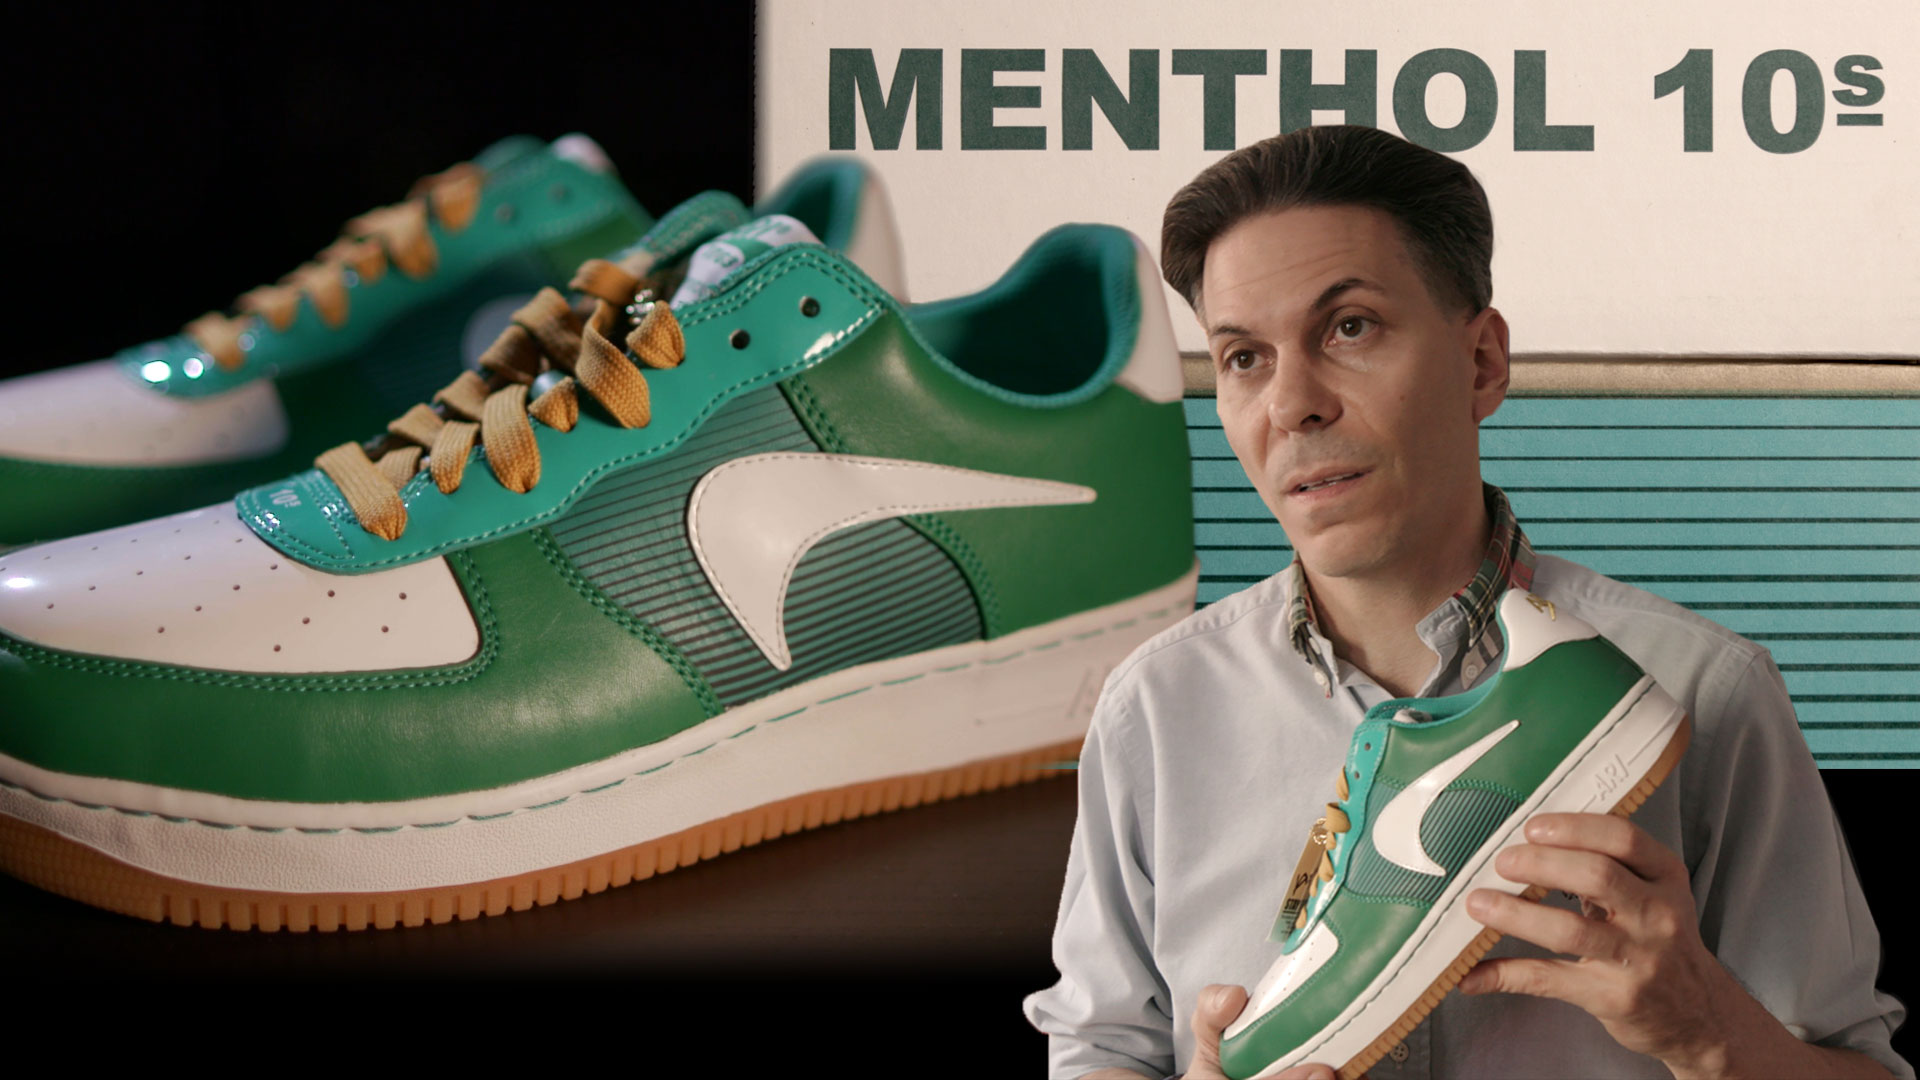 48f774841e41 The Bootleg Nikes that Got Banned by Big Tobacco - VICE Video   Documentaries